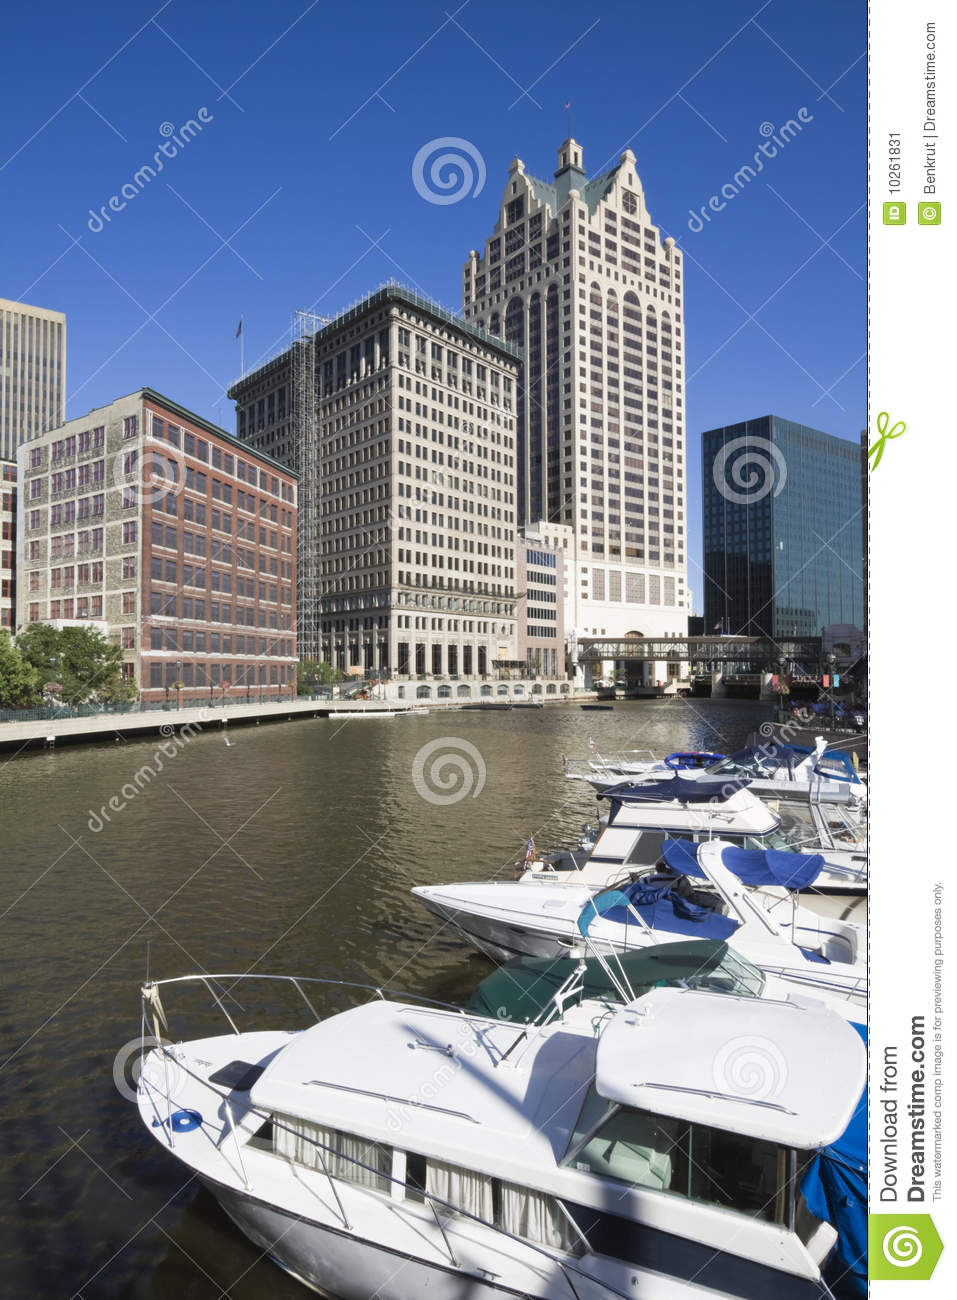 River In Milwaukee Stock Image. Image Of Vacations, Boat